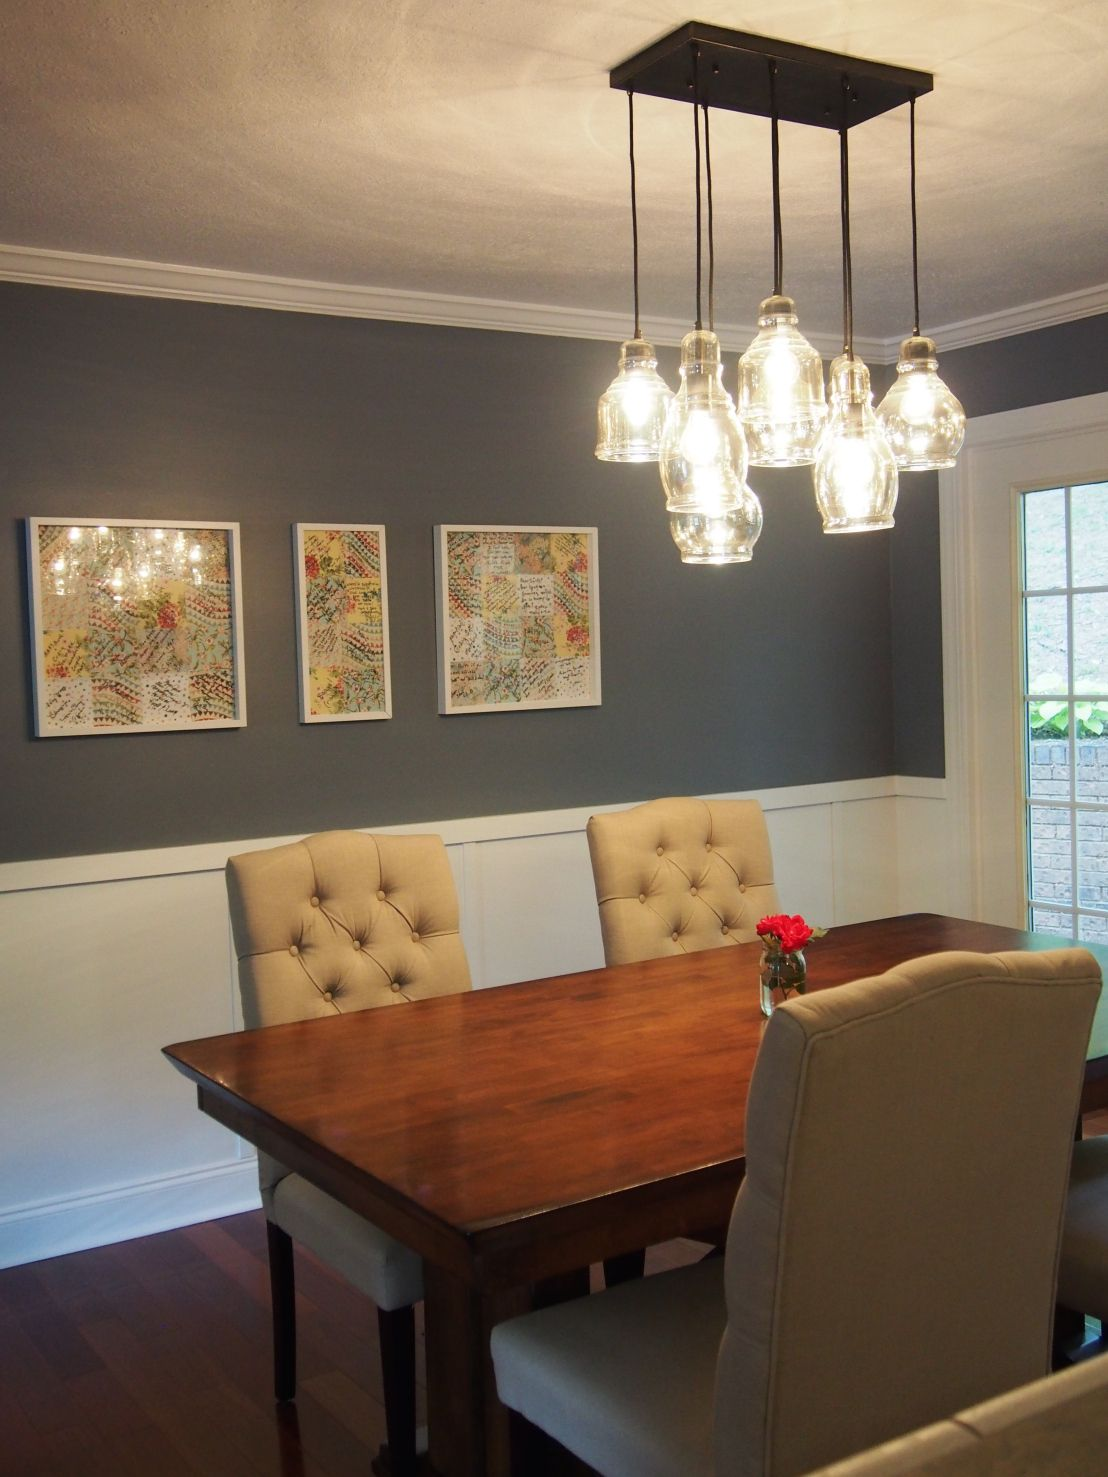 Dining Room Remodel Inspiration Dining Room Remodel  Sherwin Williams Storm Cloud Pendant Decorating Inspiration